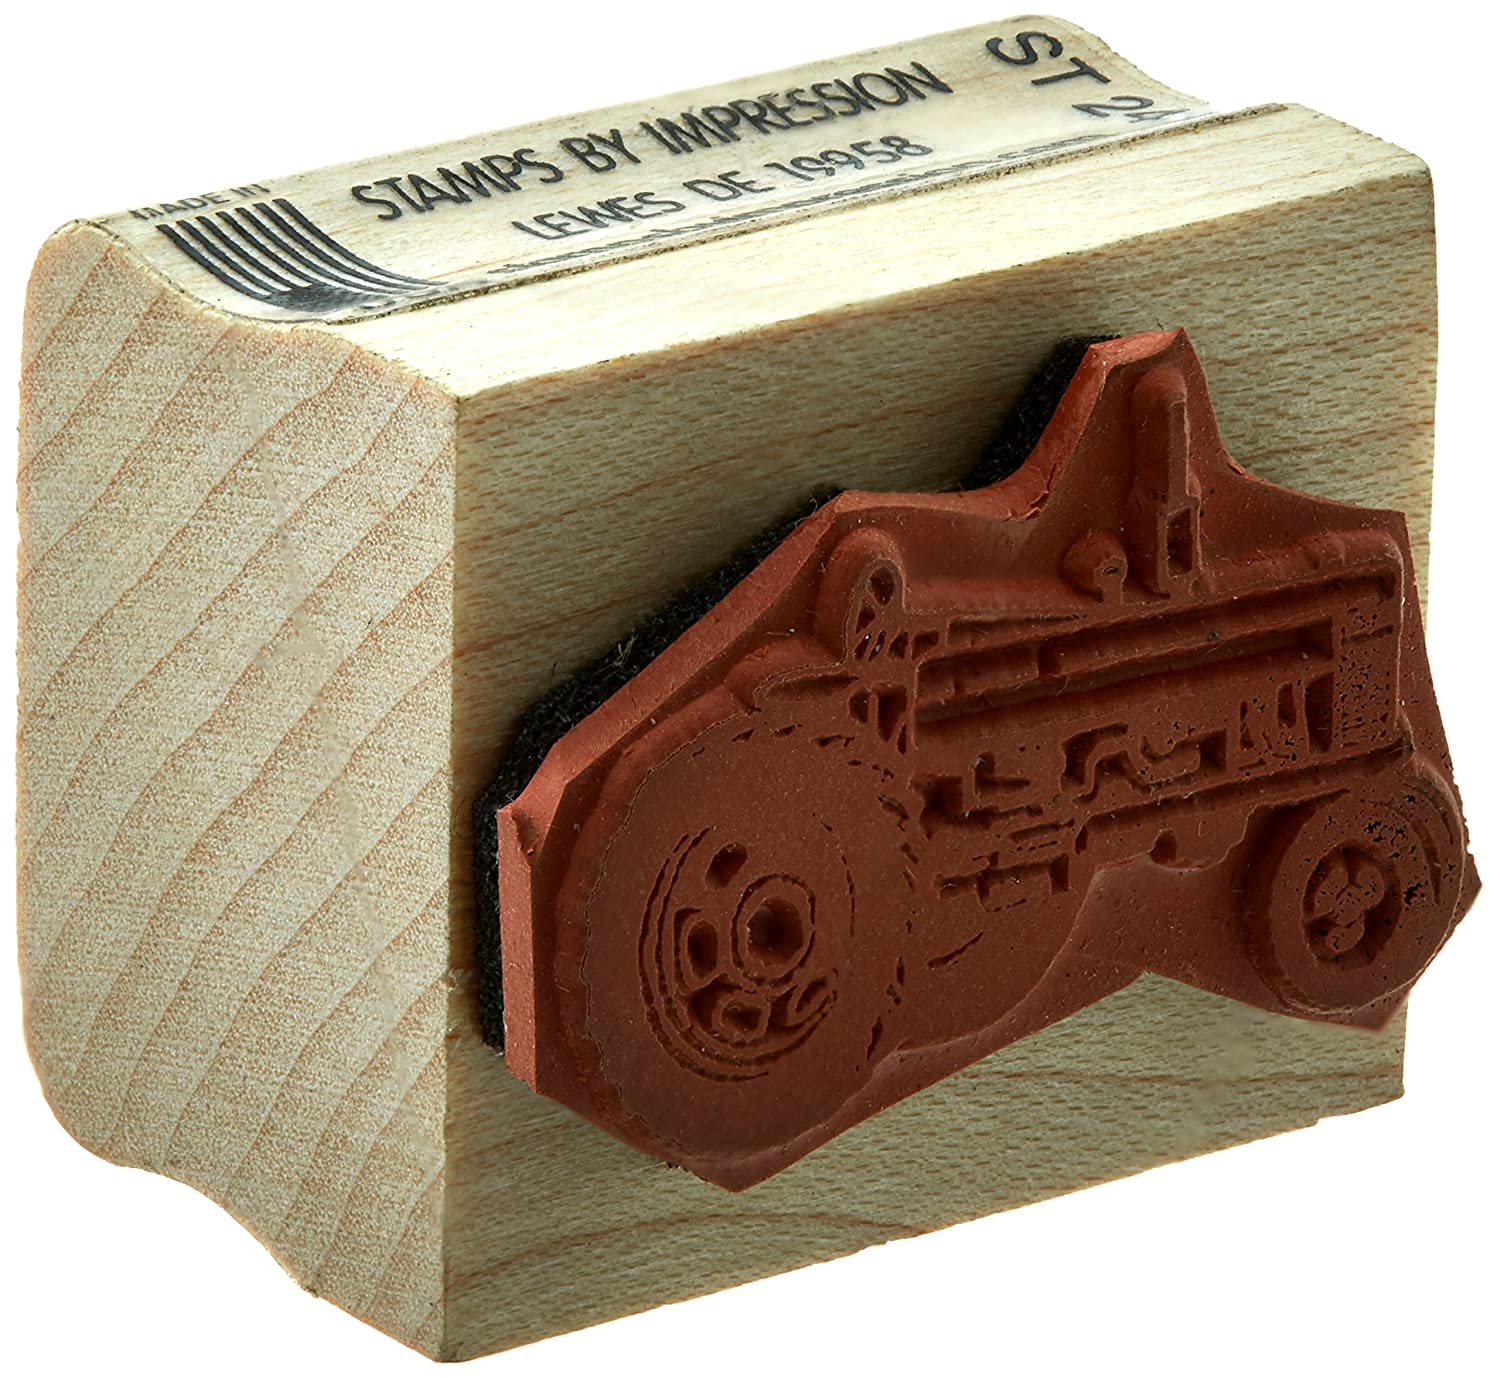 Stamps by Impression ST 0243 Tractor Rubber Stamp